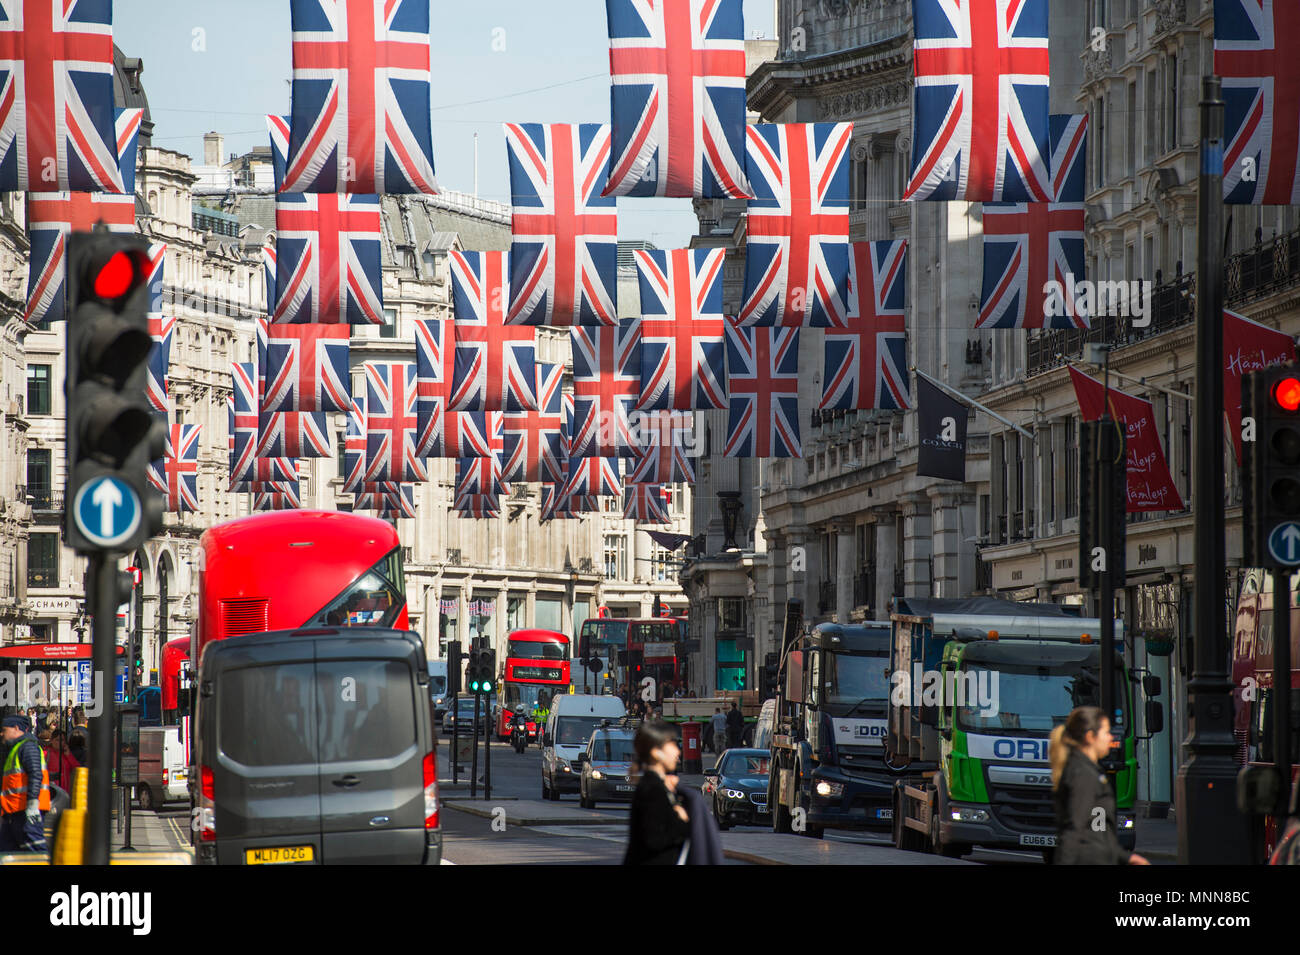 18 May 2018. Royal Wedding festivities above the retailers in Regent Street, London's premier shopping street of the West End. - Stock Image